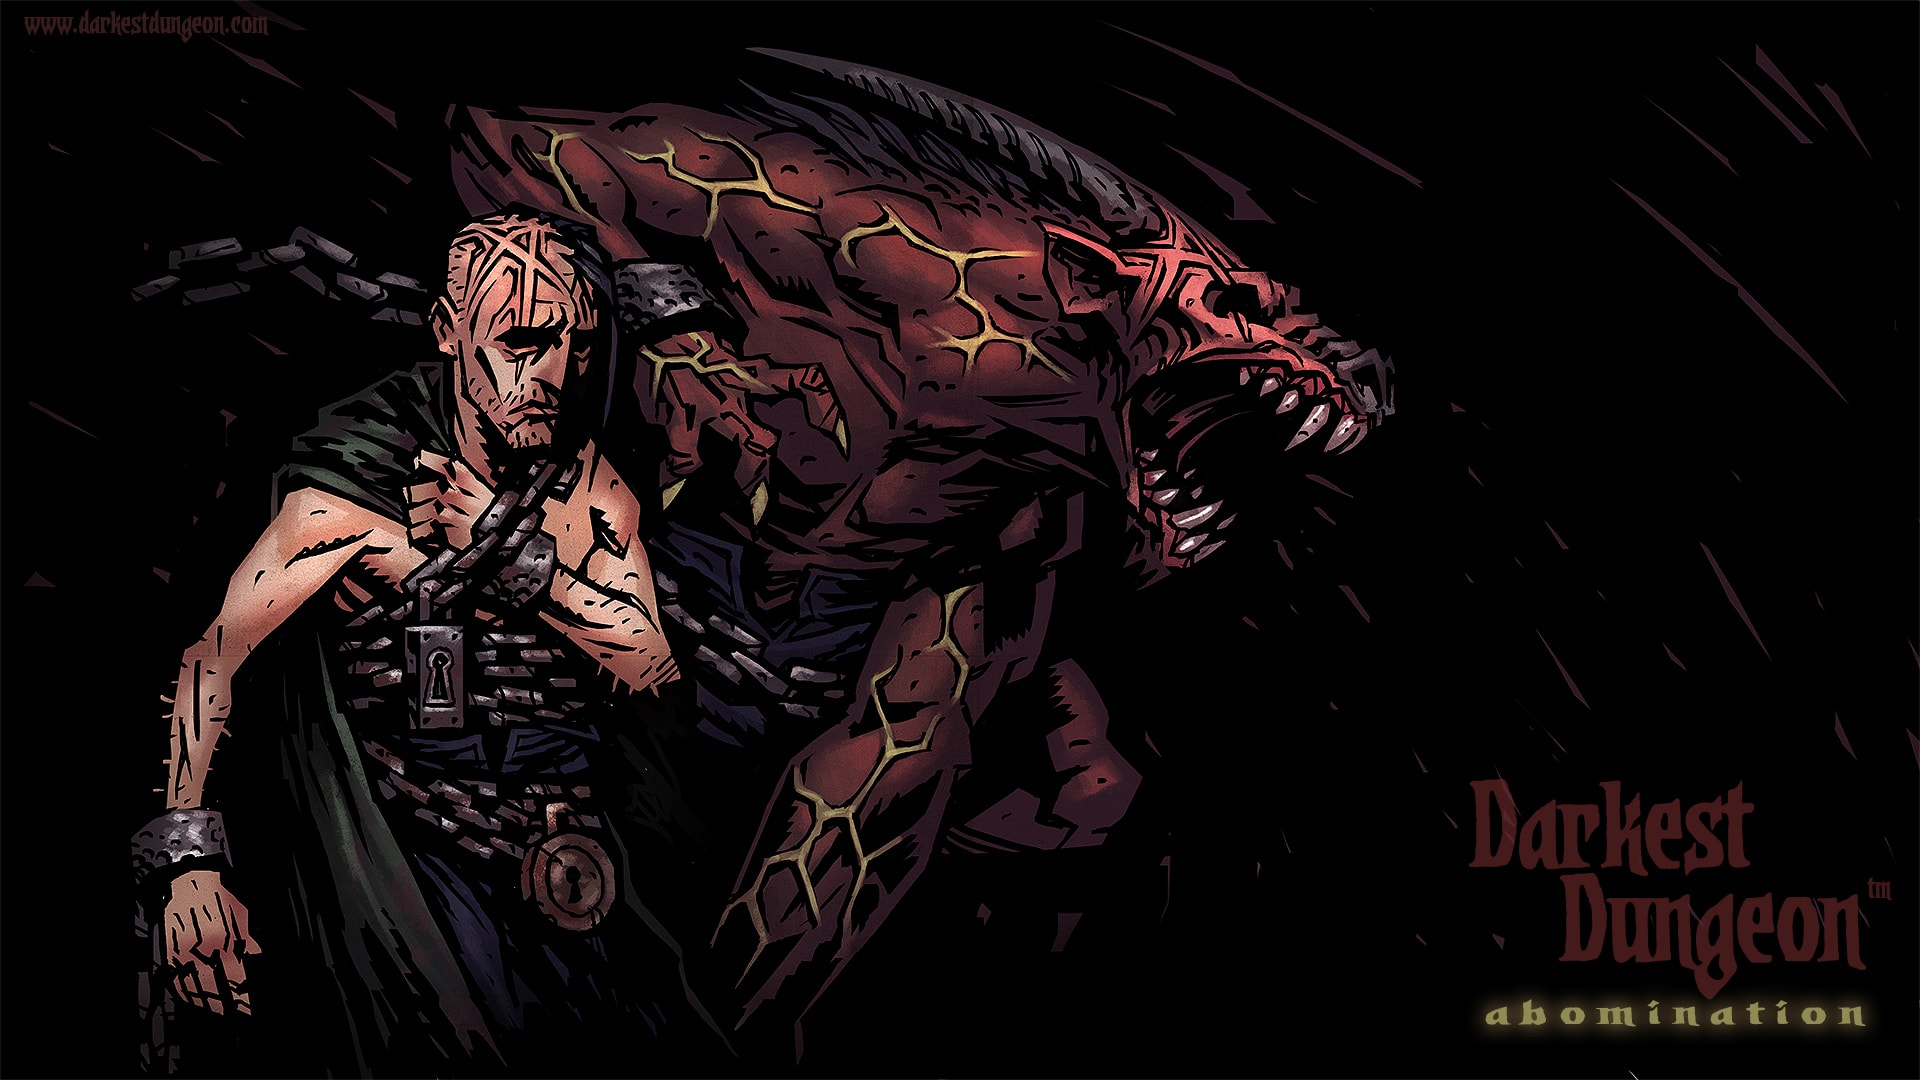 Darkest Dungeon: Abomination Background